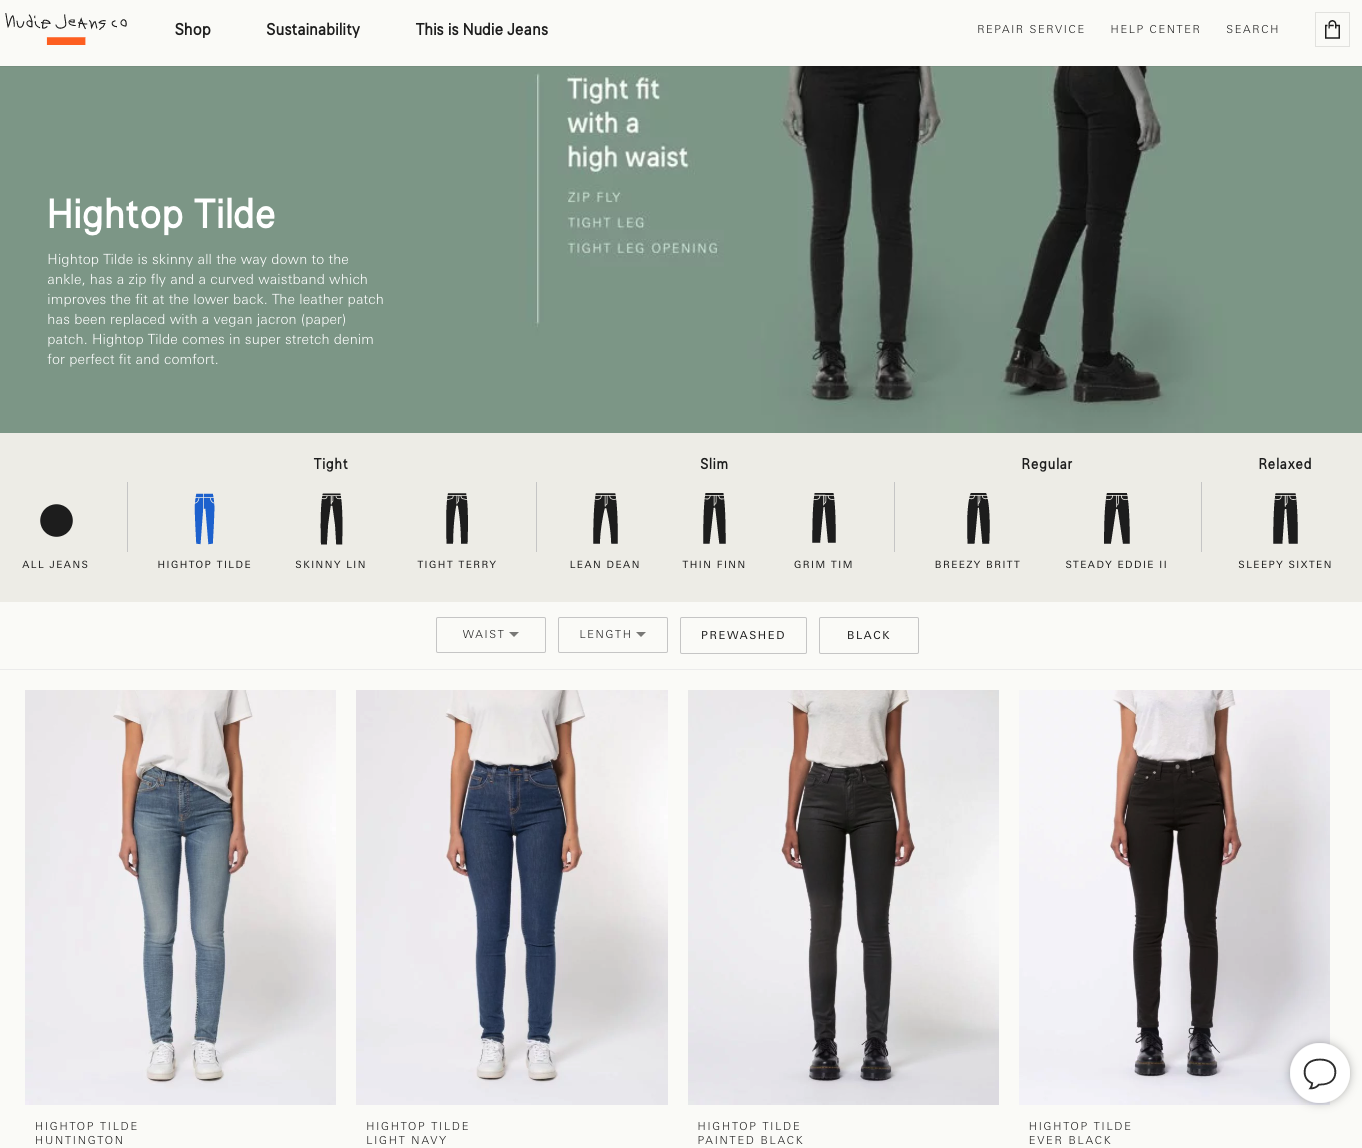 persuasive design from browsers to buyers